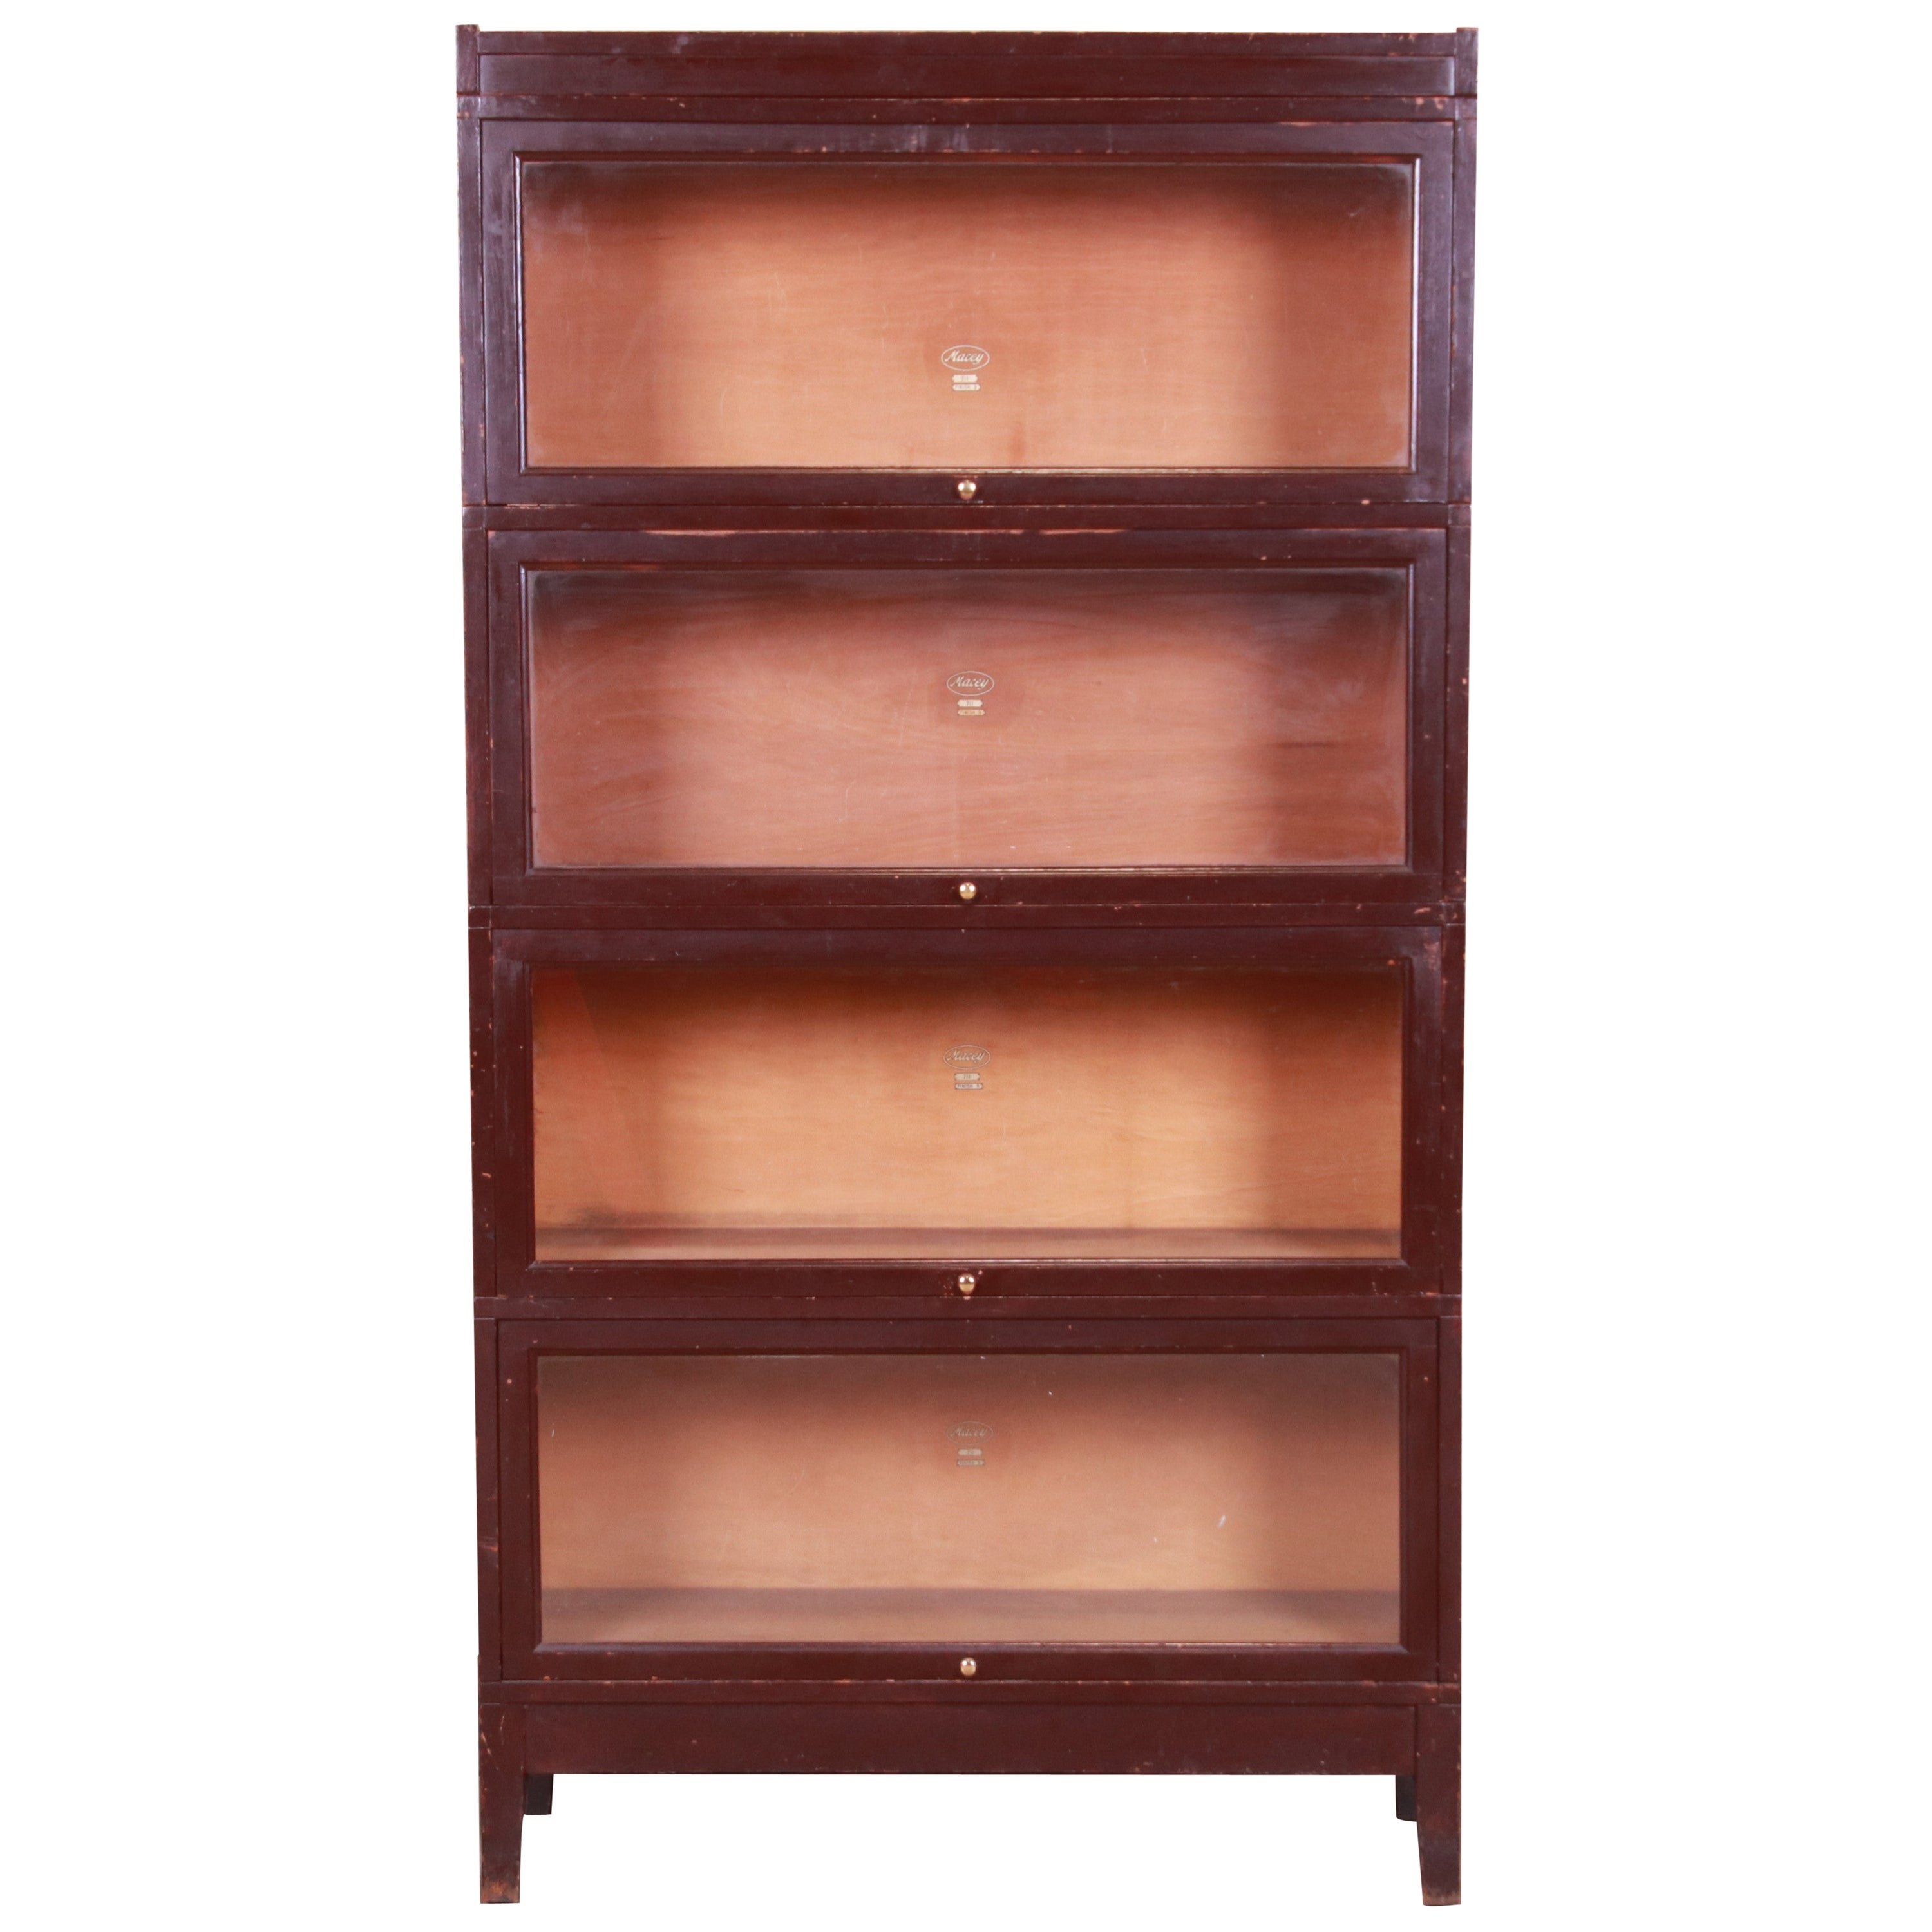 Antique Four-Stack Barrister Bookcase by Macey, Circa 1920s